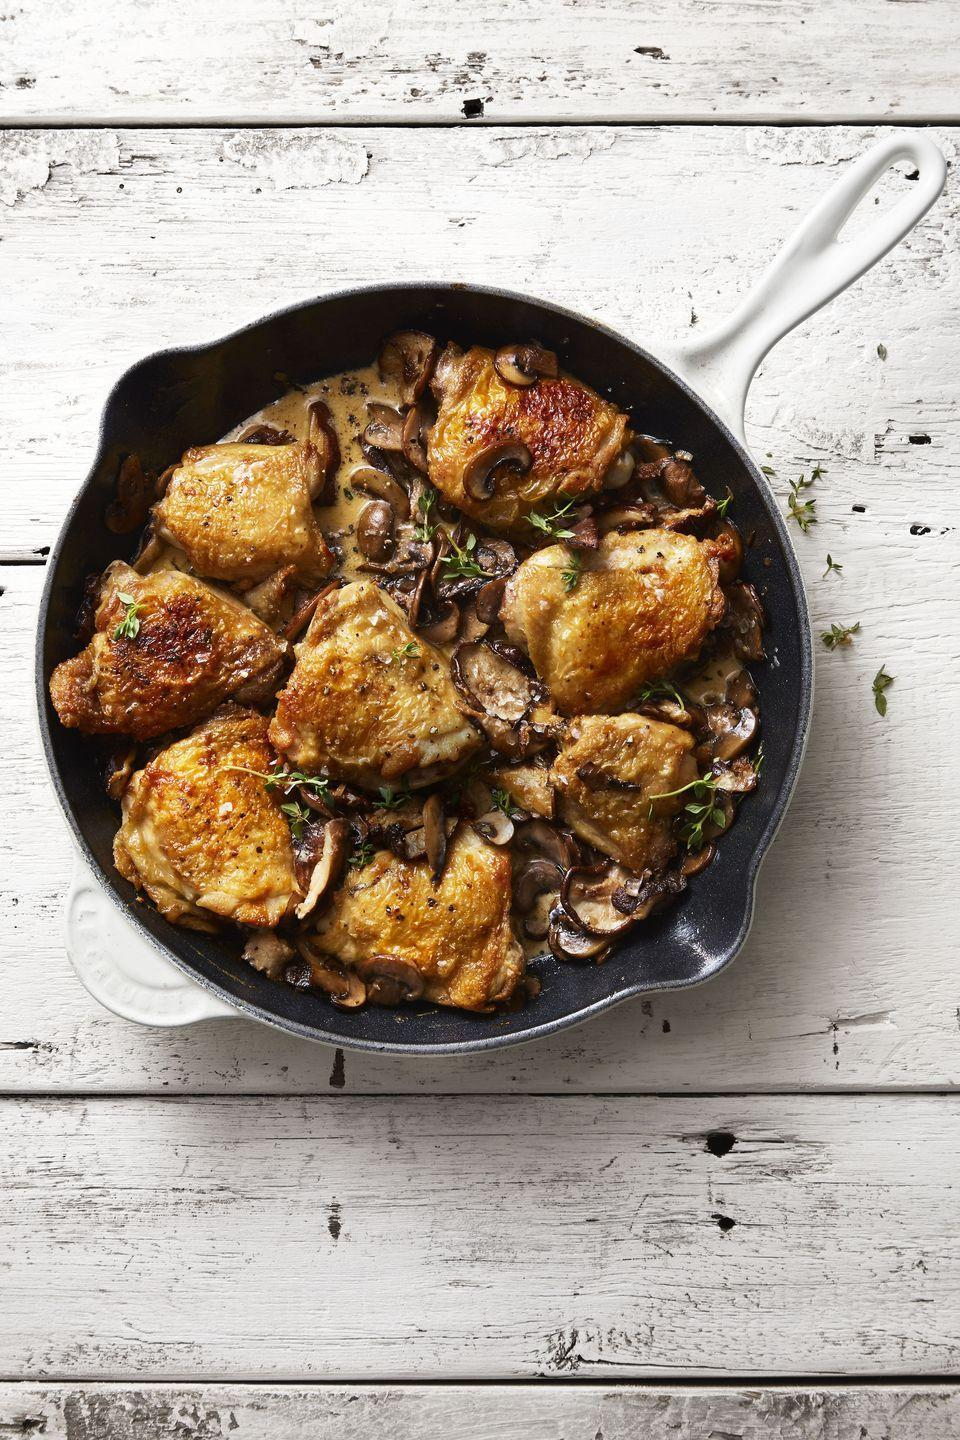 "<p>Chicken dinners are typically fail-proof but that doesn't mean they're boring — this creamy, mushroom dish is anything but. </p><p><em><a href=""https://www.goodhousekeeping.com/food-recipes/a46042/mushroom-chicken-skillet-with-herbed-cream-sauce-recipe/"" rel=""nofollow noopener"" target=""_blank"" data-ylk=""slk:Get the recipe for Mushroom Chicken Skillet with Herbed Cream Sauce »"" class=""link rapid-noclick-resp"">Get the recipe for Mushroom Chicken Skillet with Herbed Cream Sauce »</a></em> </p>"